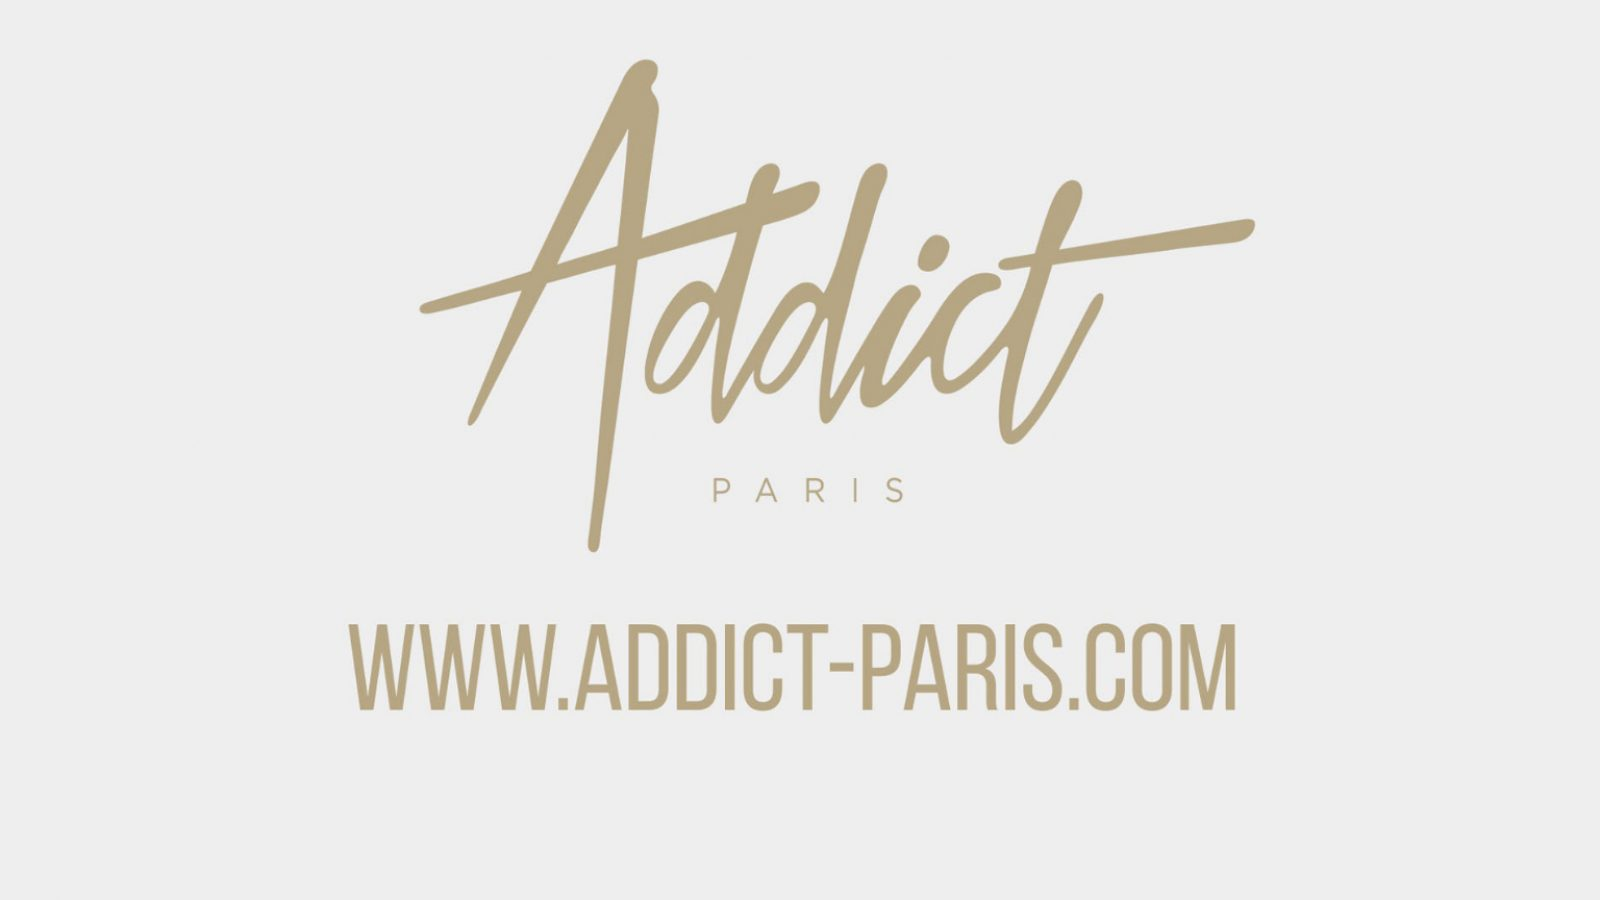 addict-paris